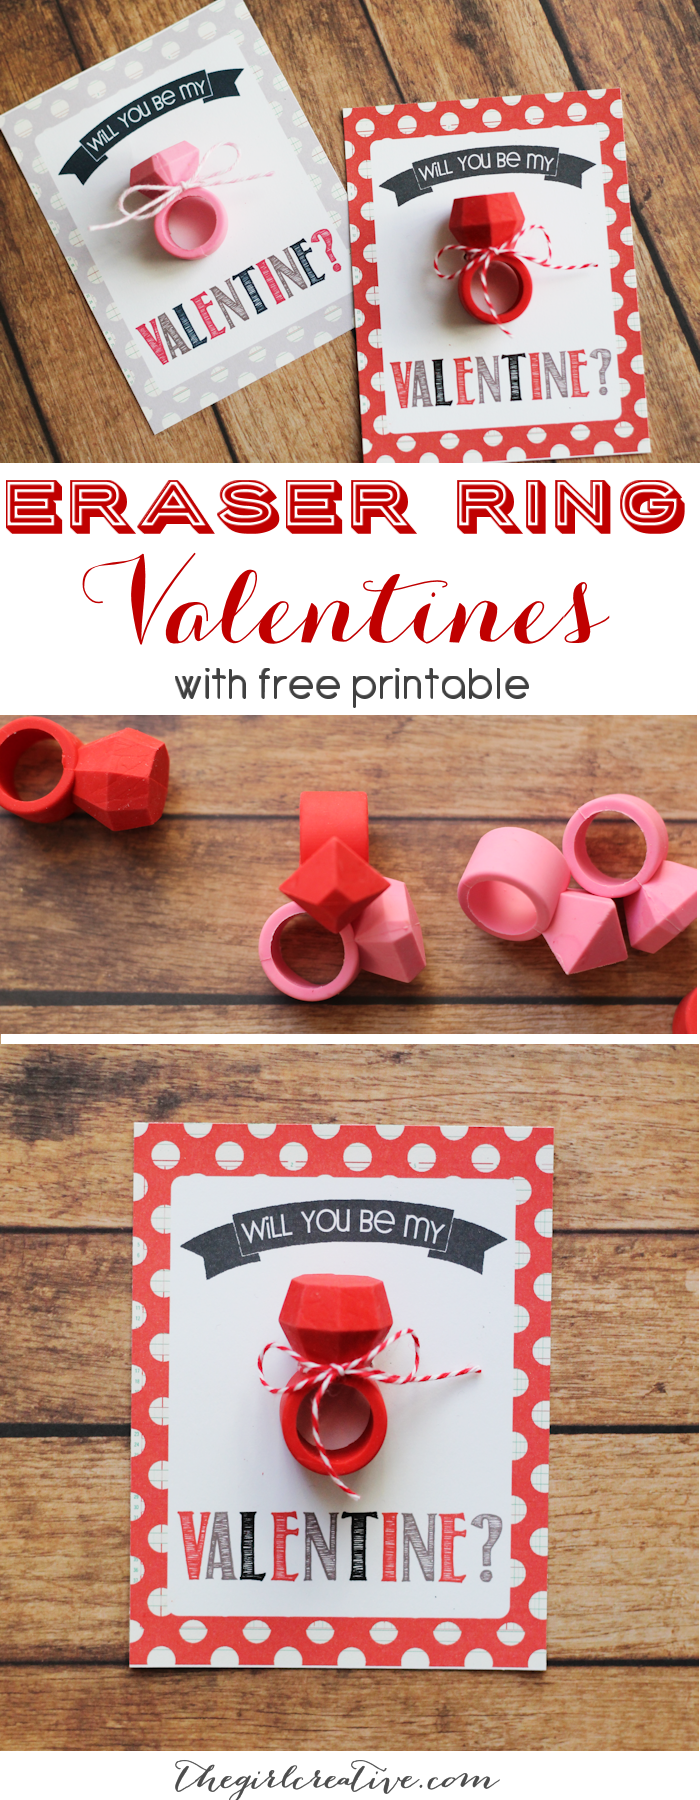 Eraser Ring Valentines - The perfect non-candy classroom valentine to share. Complete with free printable